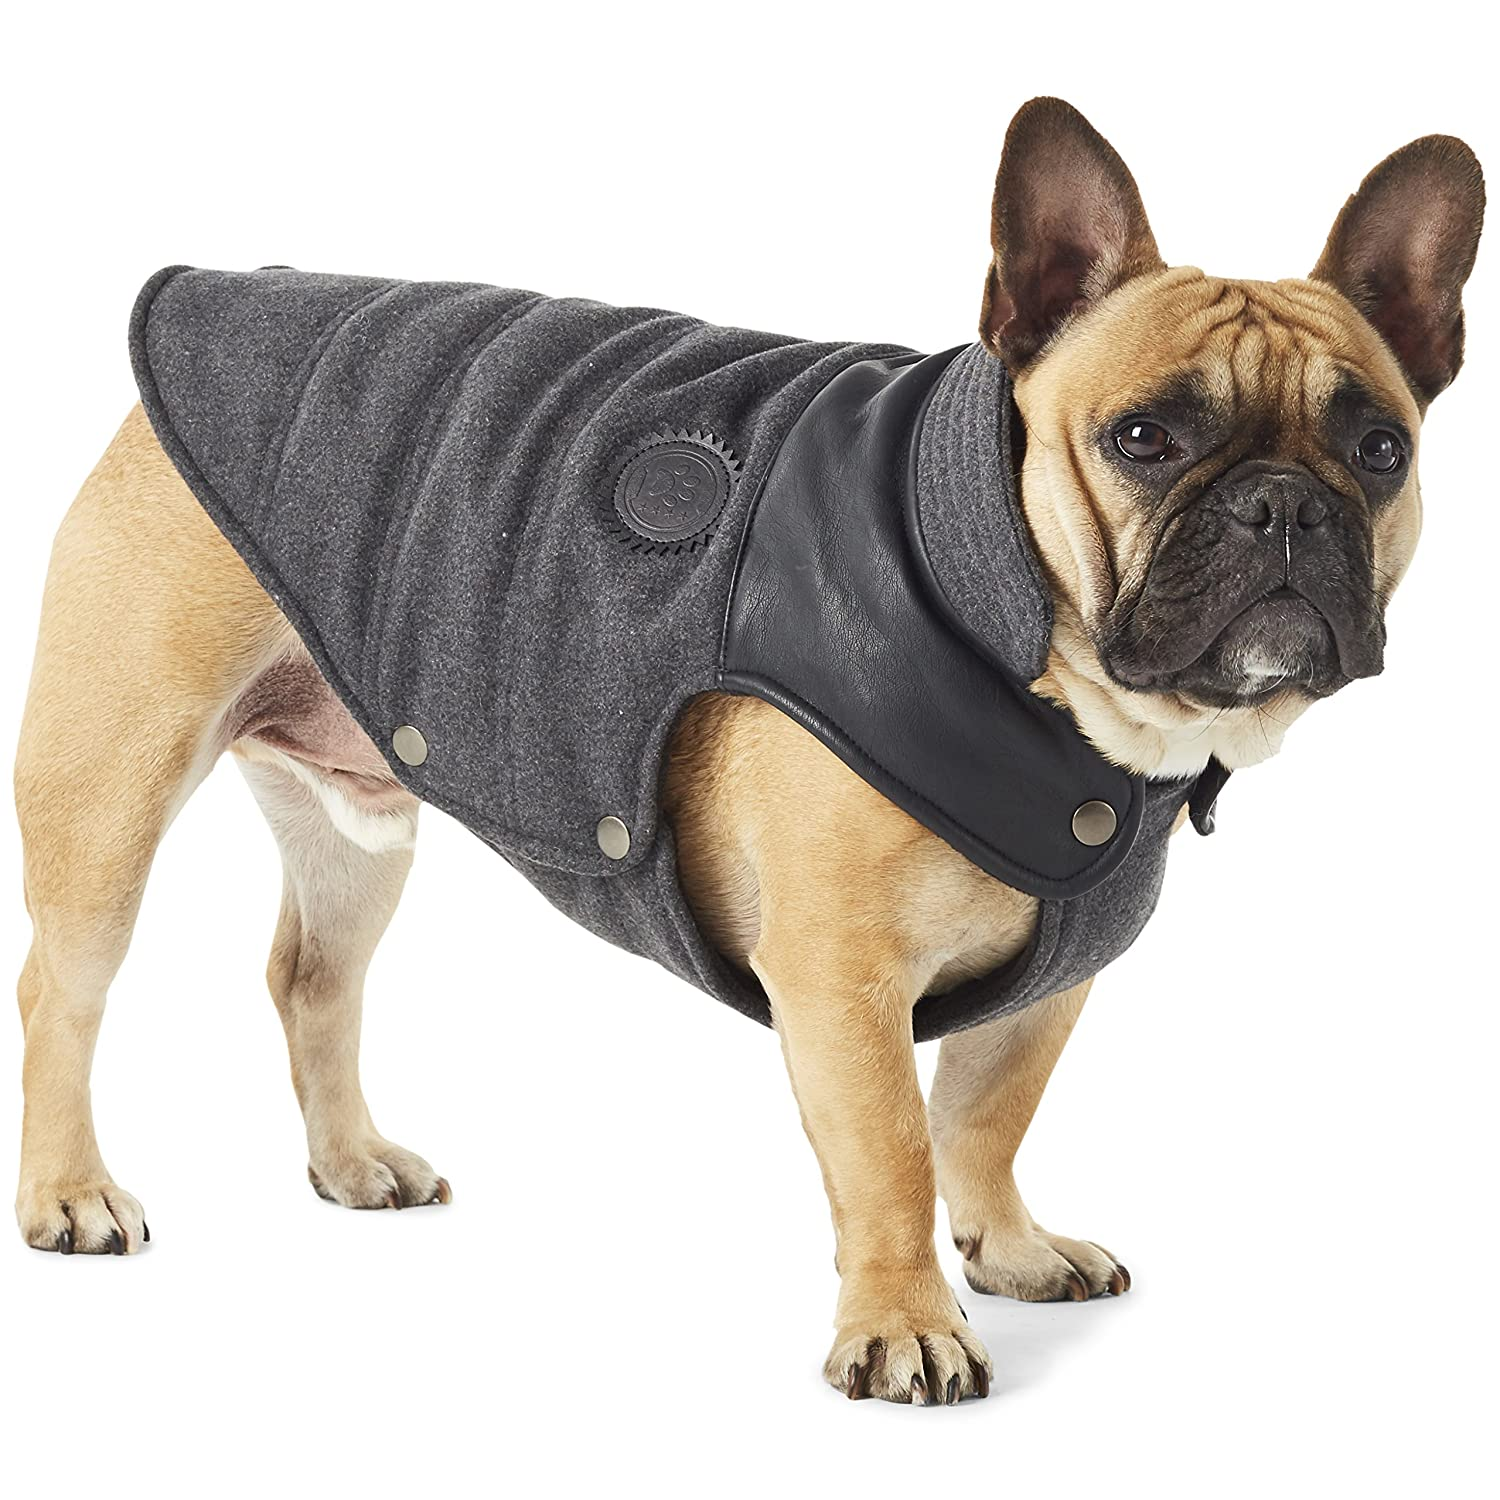 Dark Grey XS Dark Grey XS Hotel Doggy Dog Coat with Vegan Leather Trim   Dark Grey Dog Jacket XS